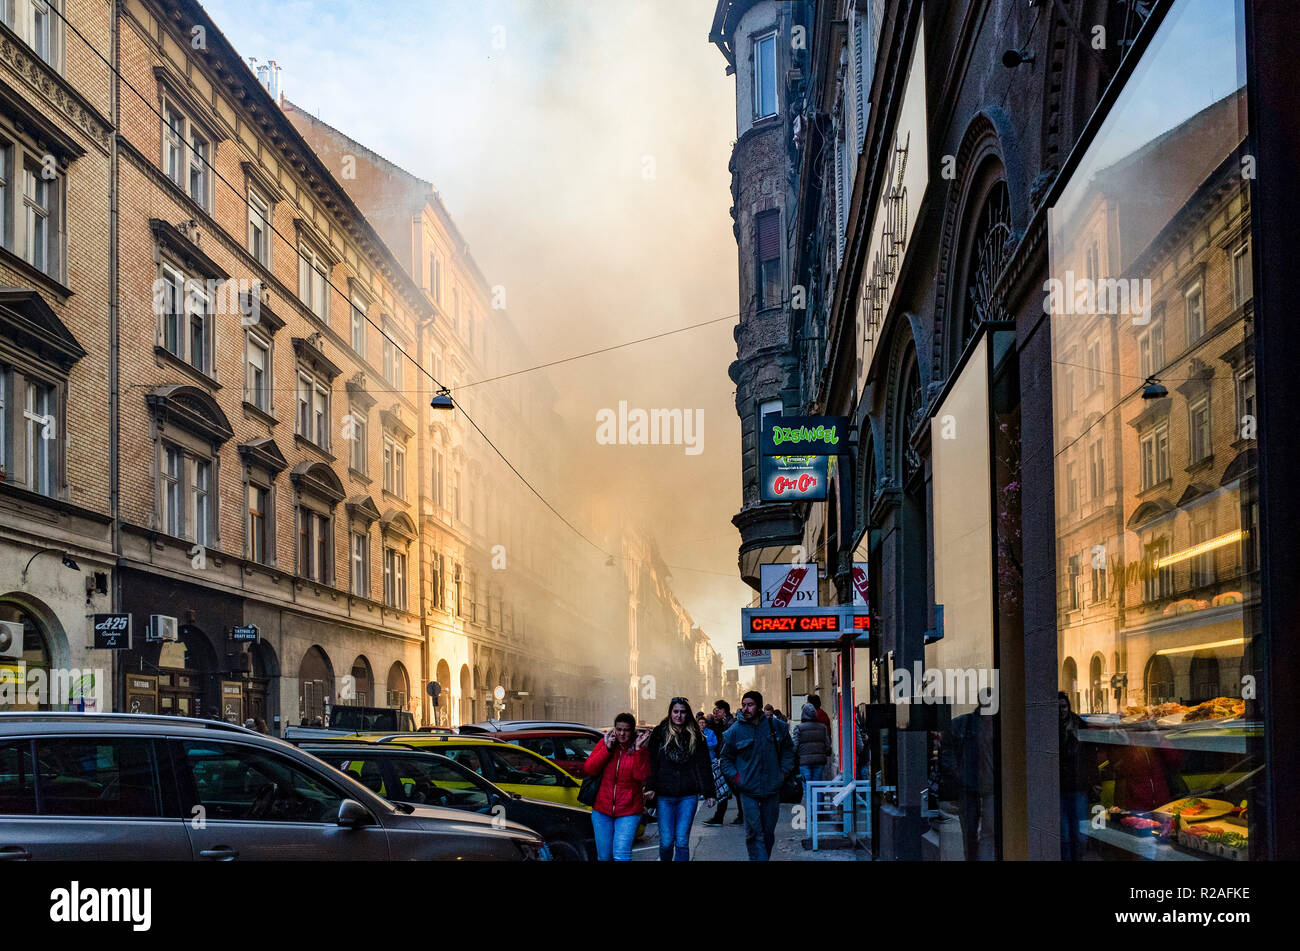 Budapest, Hungary. 17th Nov, 2018. Building fire in downtown Budapest Credit: Krisztina Papp/Alamy Live News - Stock Image